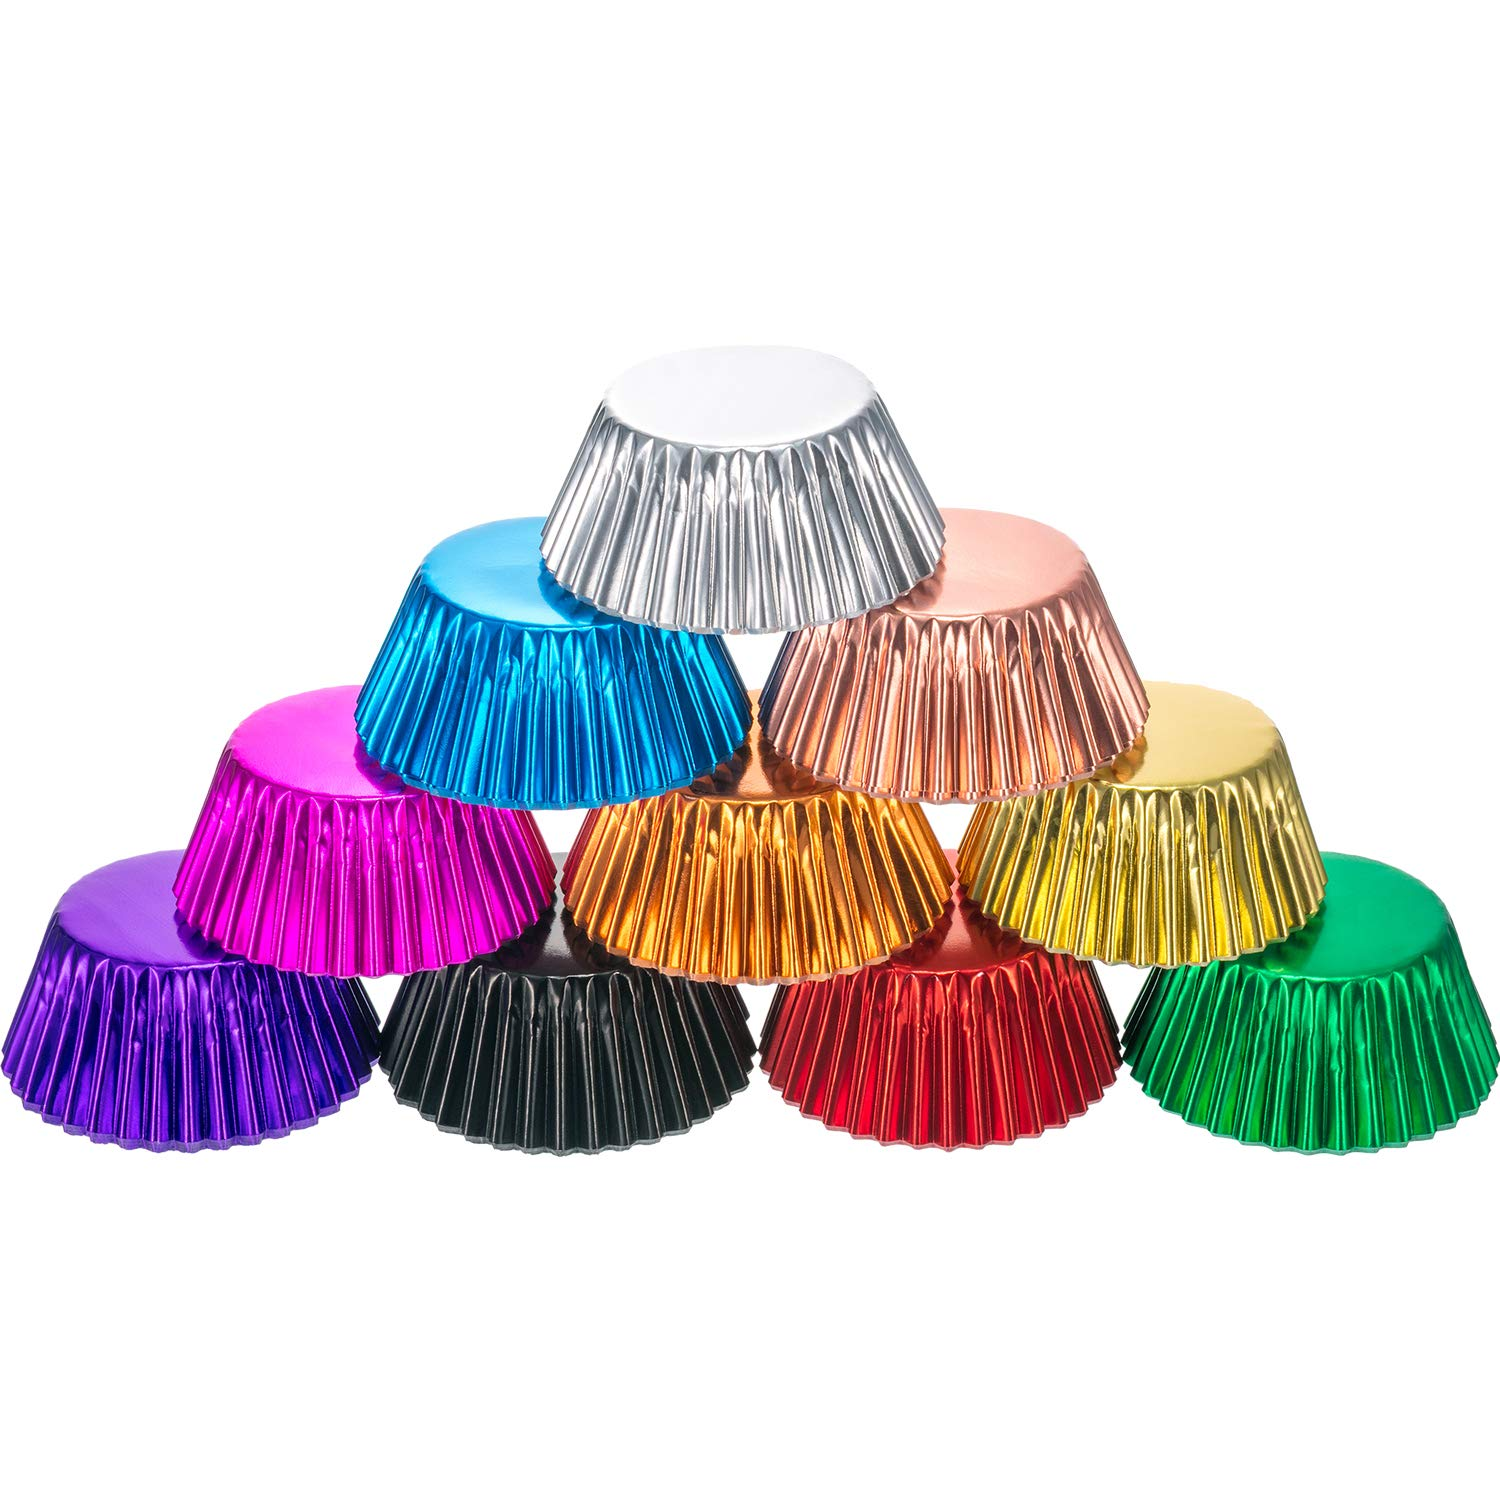 Sumind 10 Colors Standard Paper Baking Cups Foil Cupcake Liners Muffin Case Decoration Cups(200 Pieces)